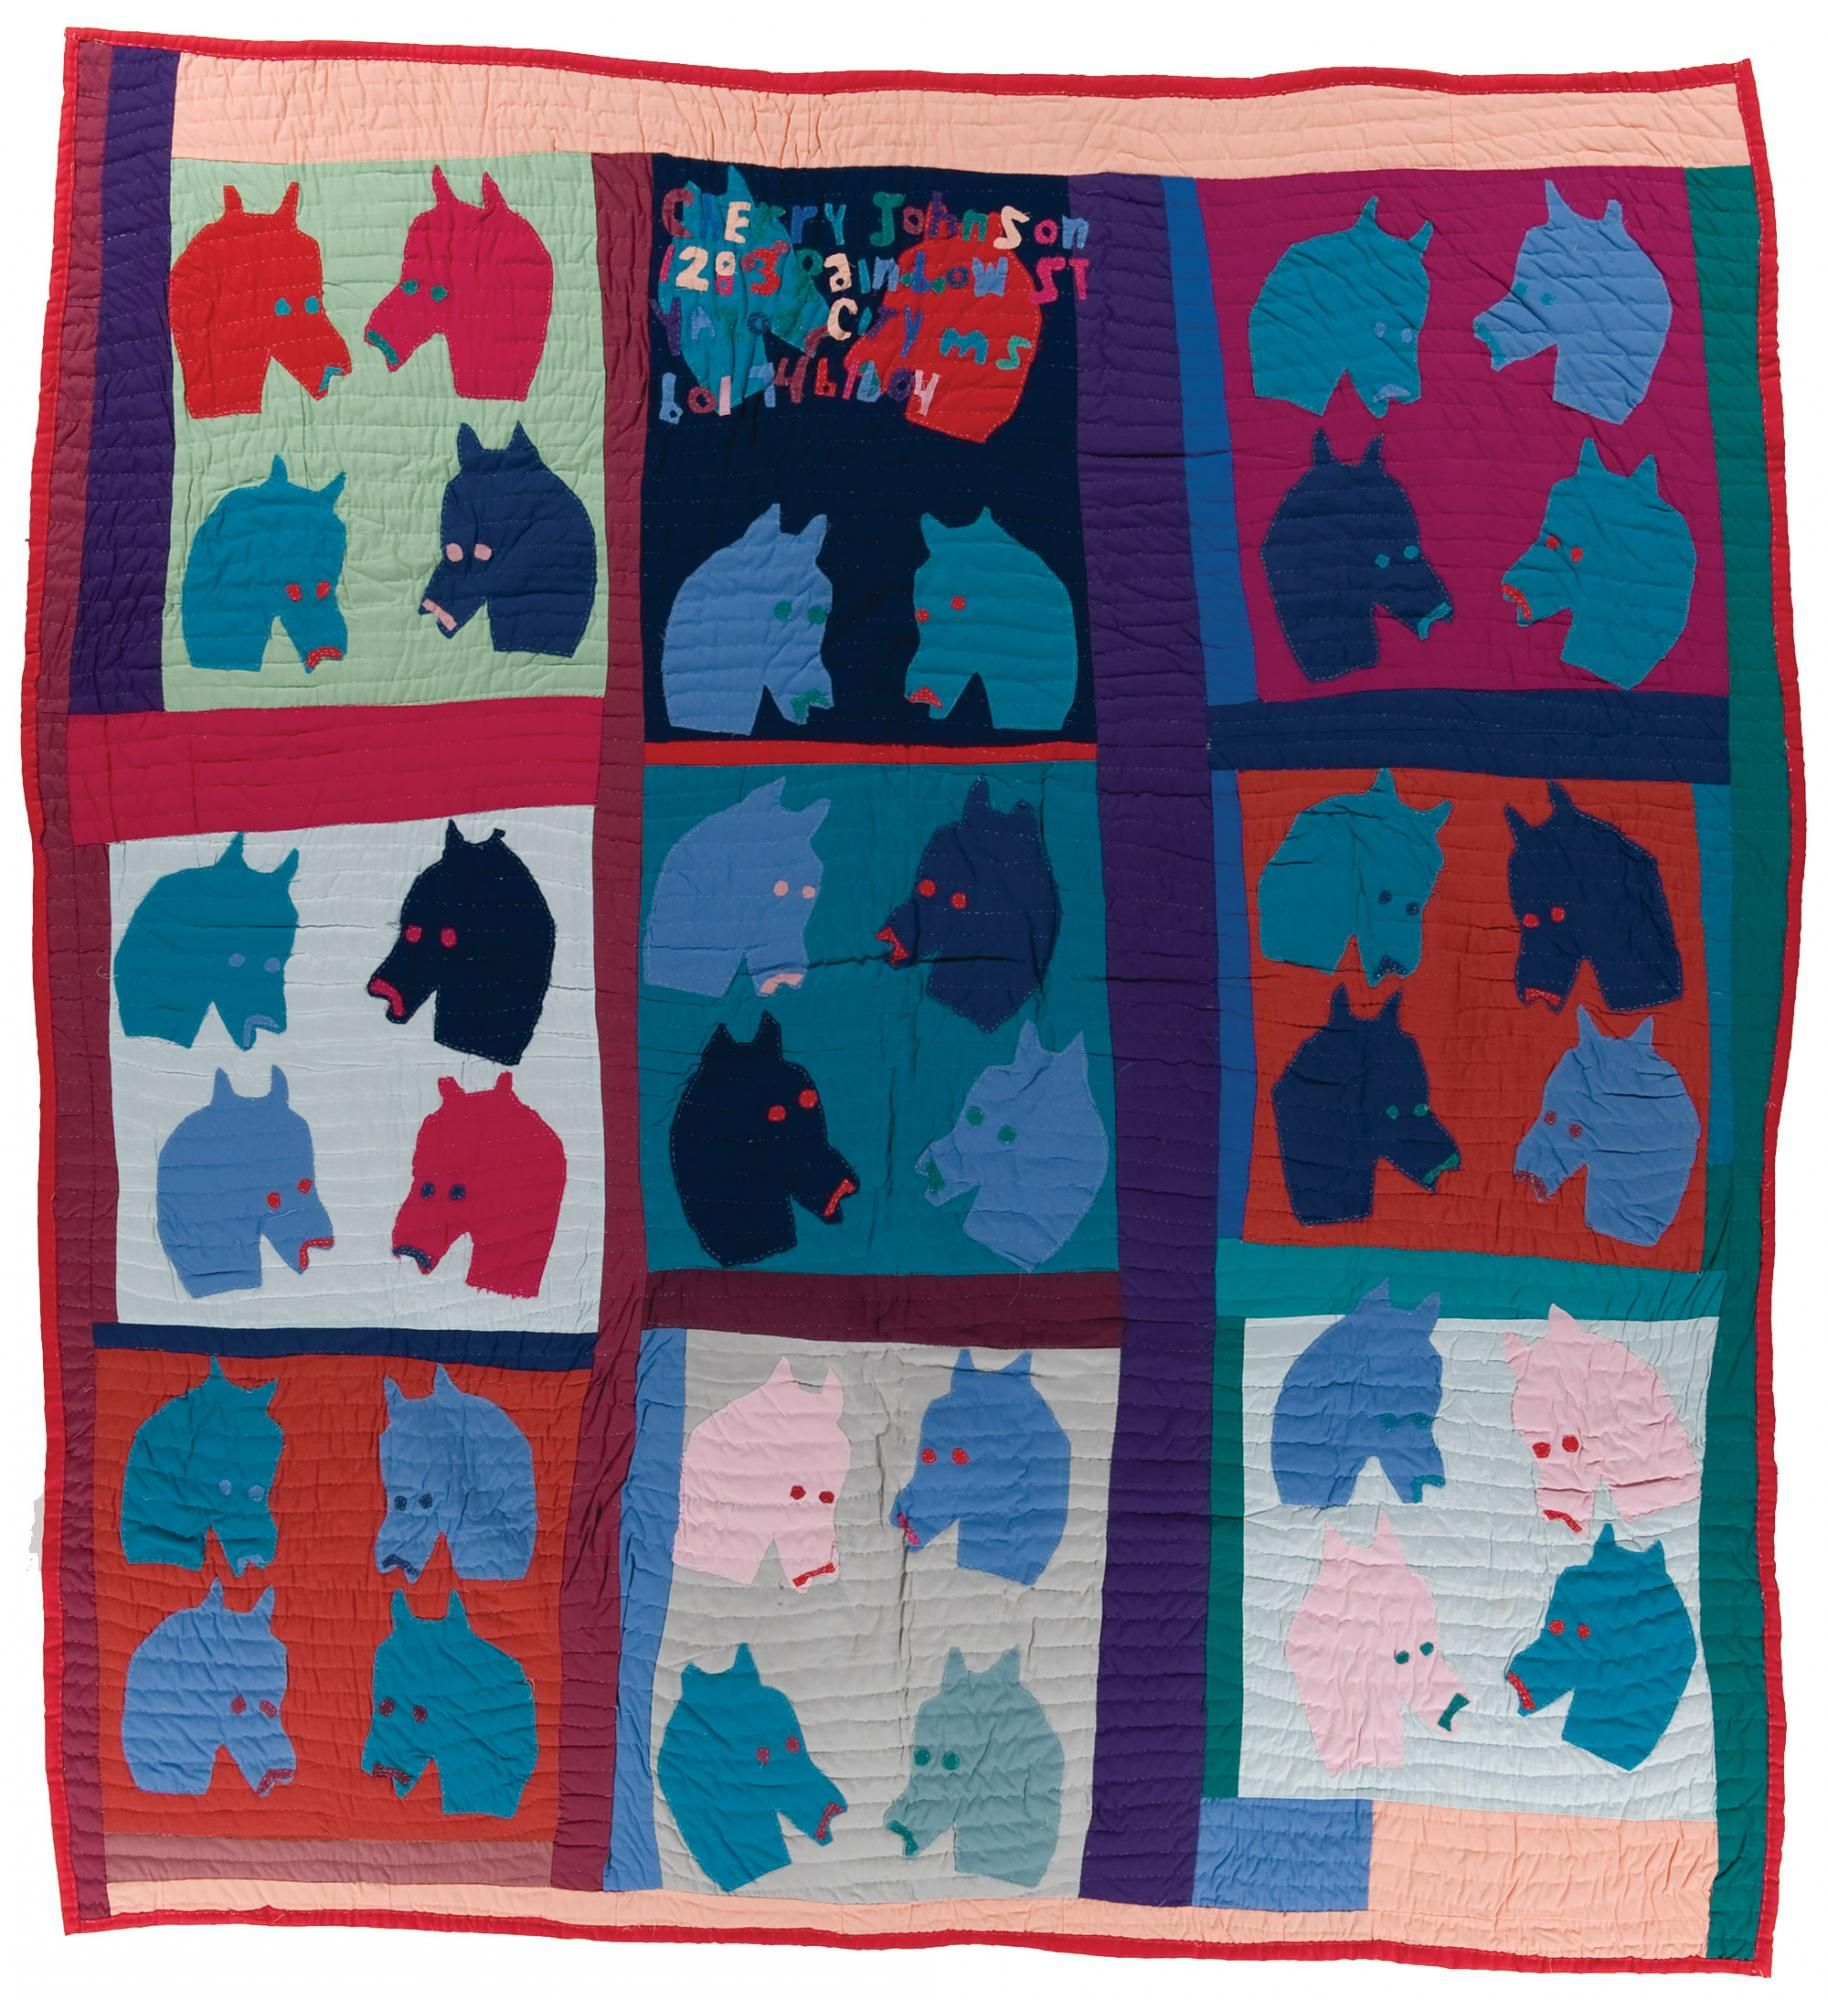 Celebrating Black Quiltmakers International Quilt Museum Lincoln Ne In 2020 Quilts African American Quilts American Quilt